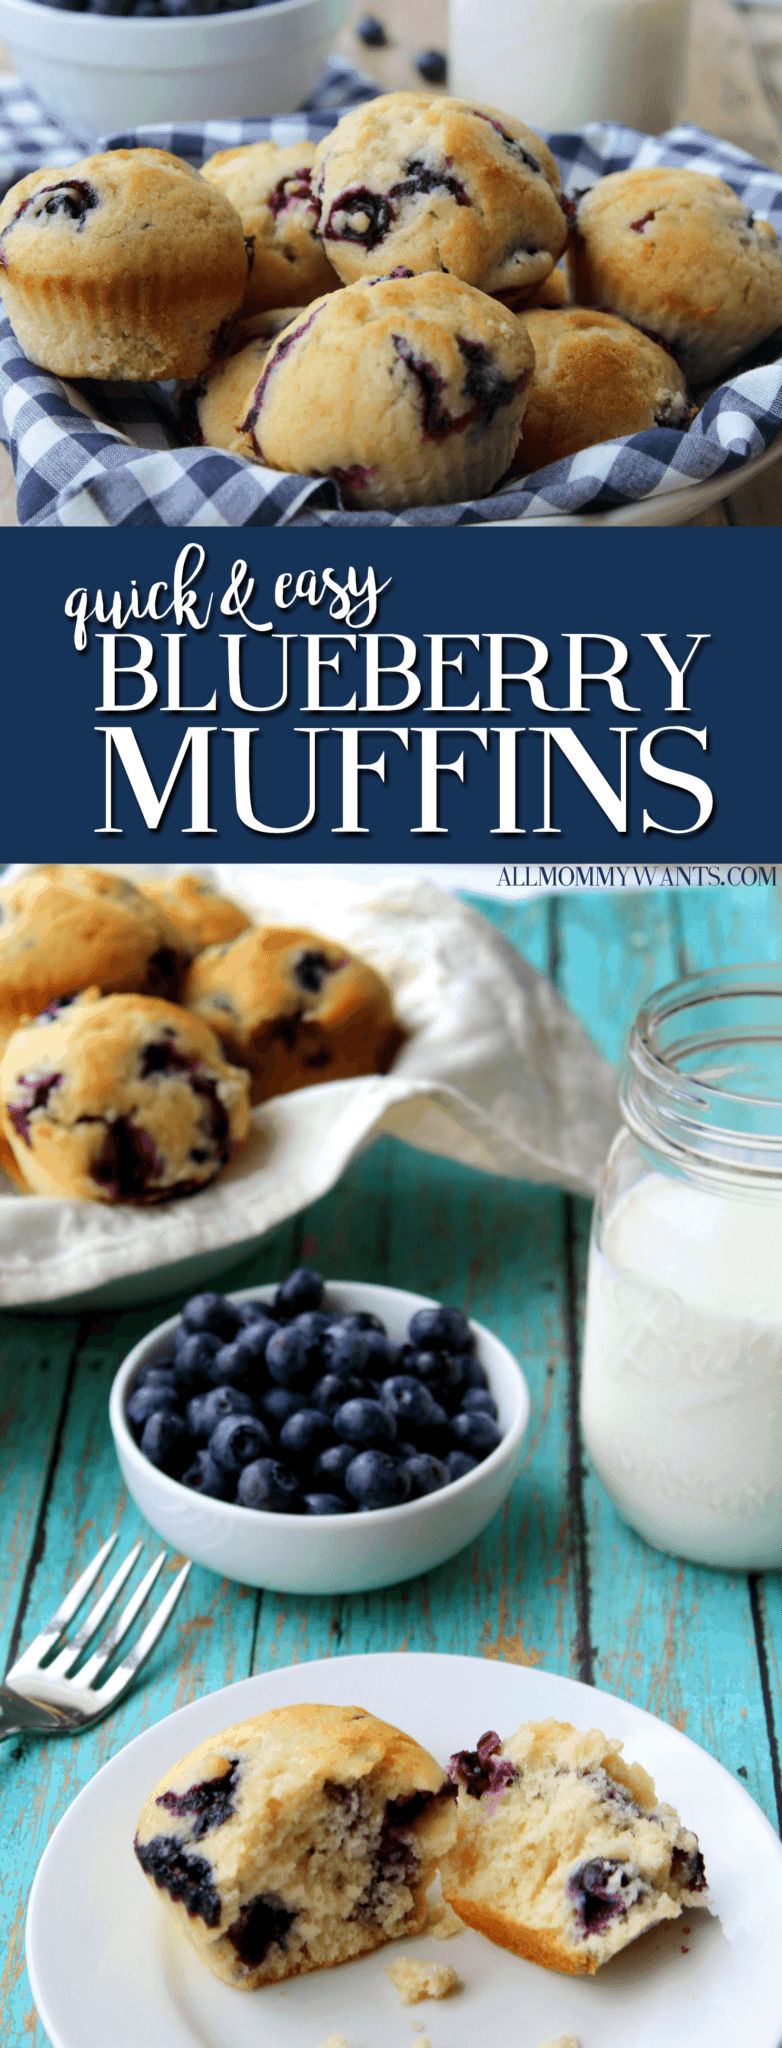 Recipe: Quick And Easy Blueberry Muffins